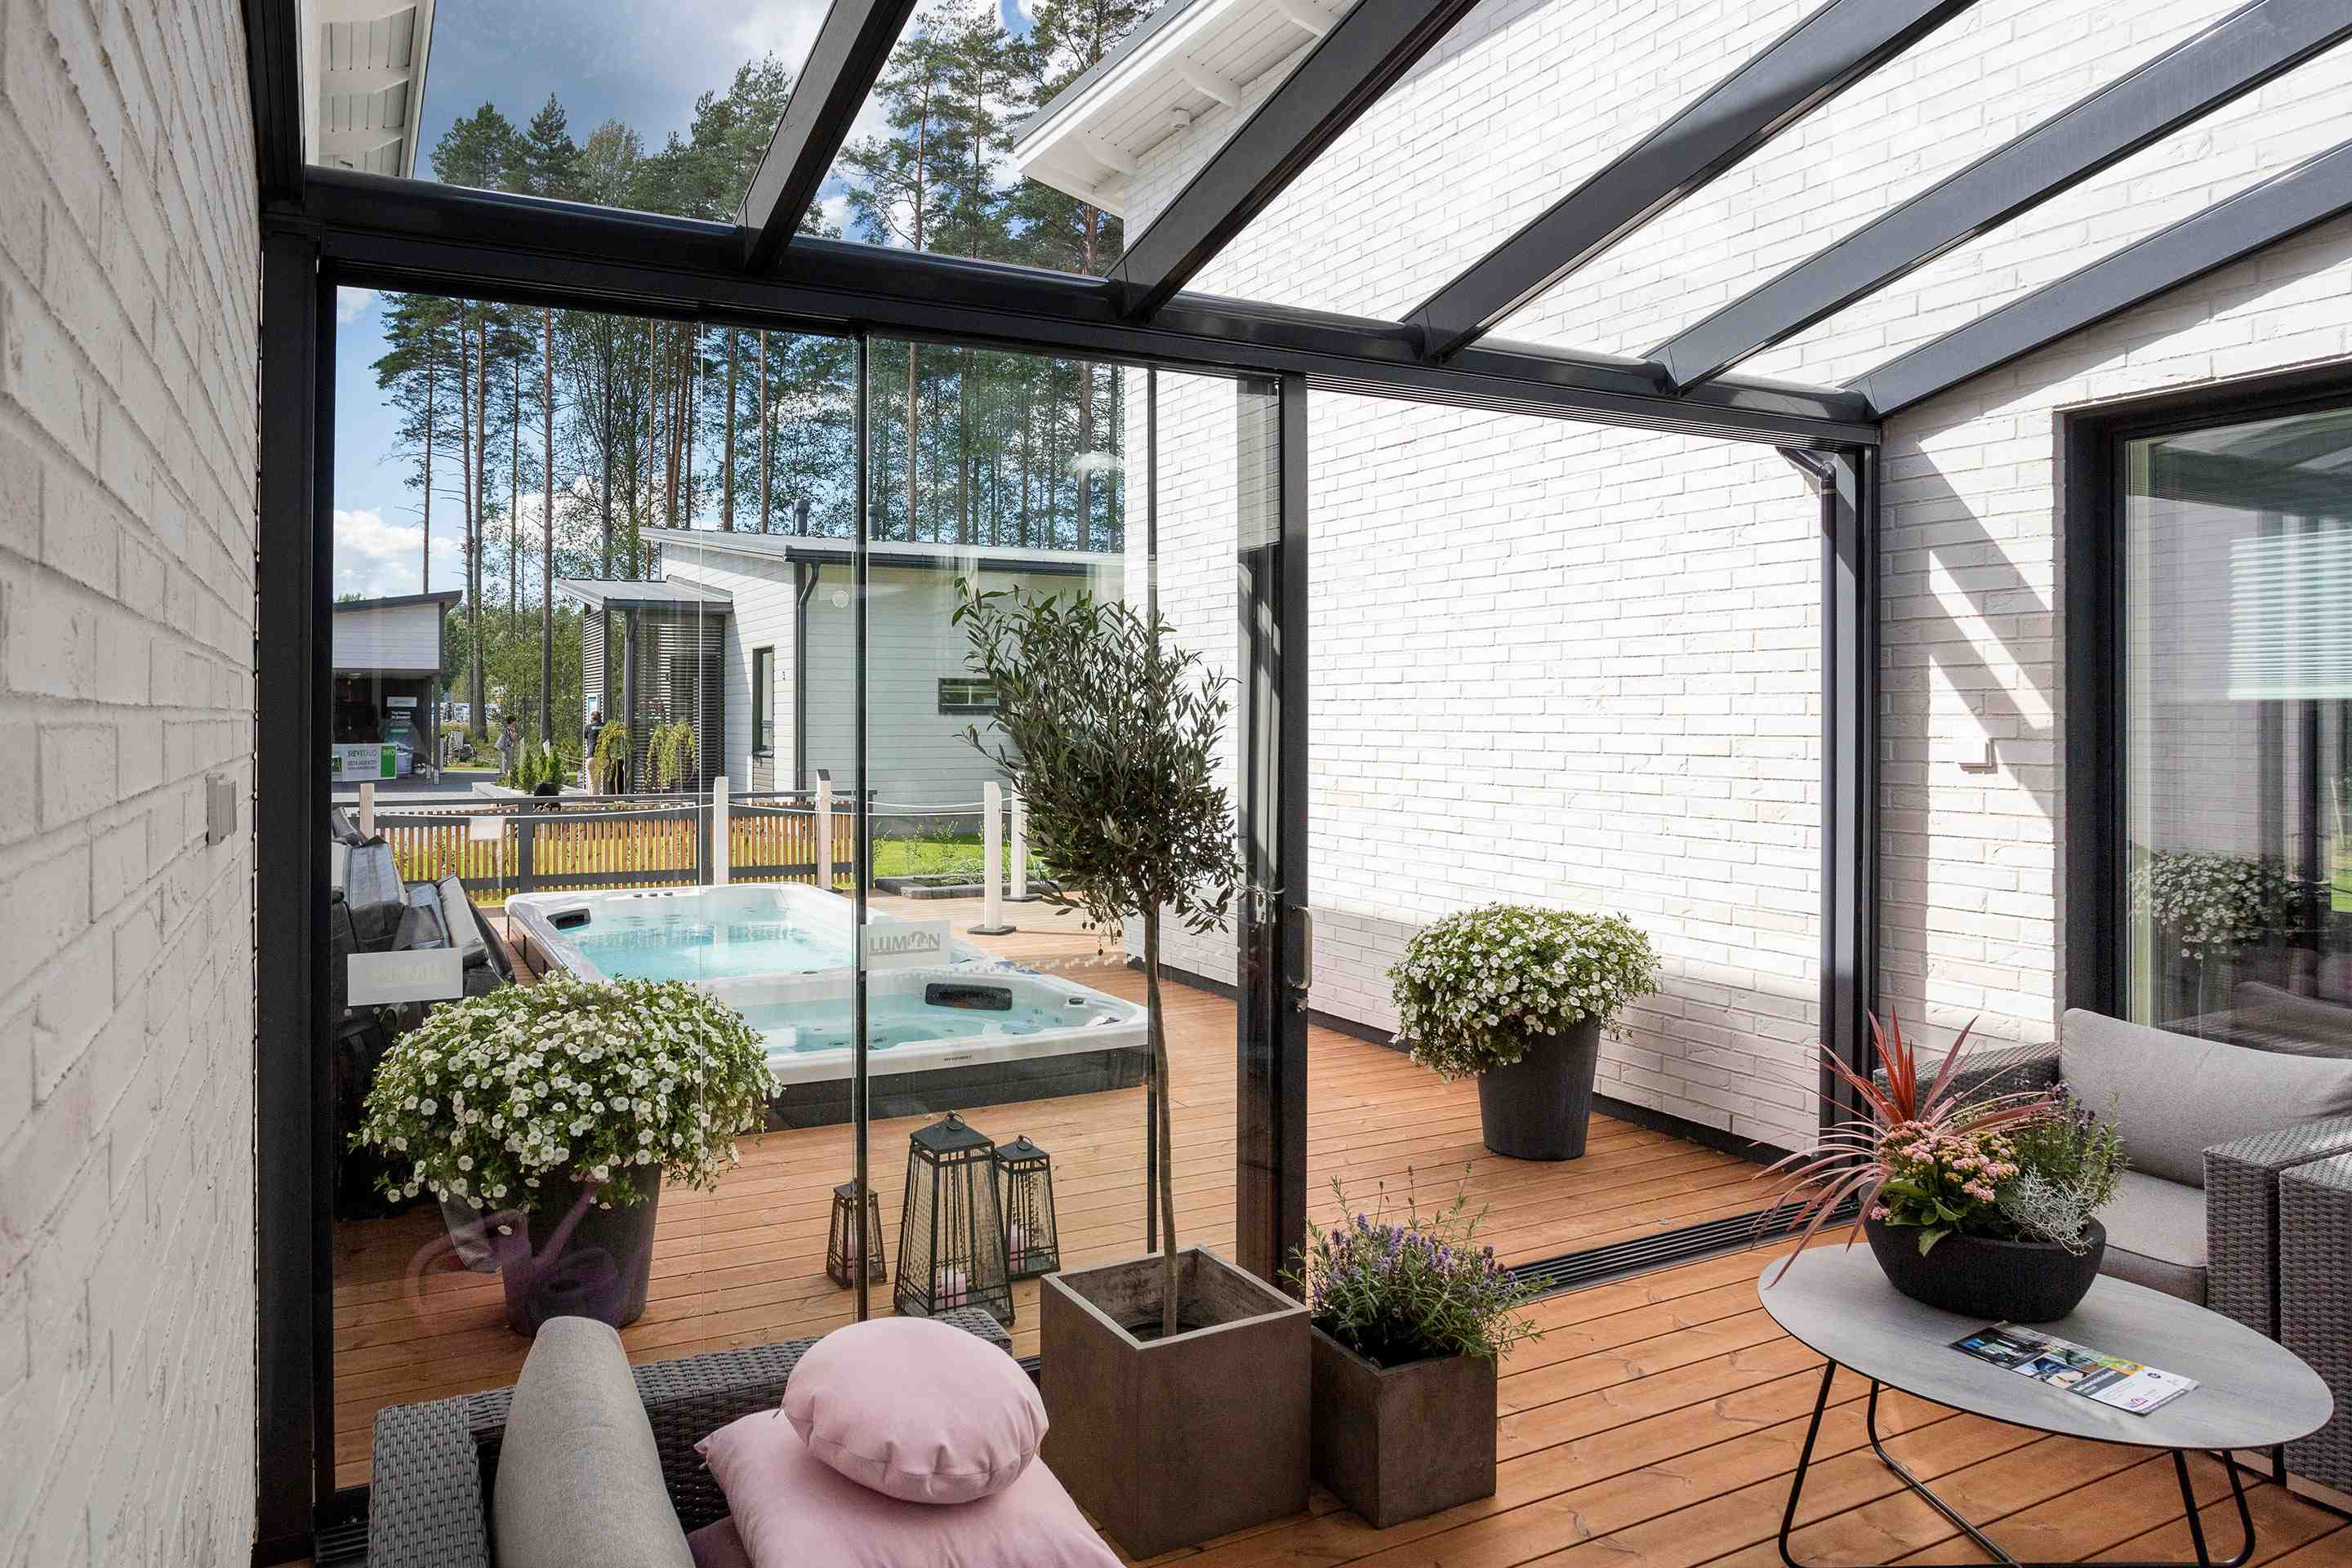 Lumon Canada, Sunroom Toronto, Sunroom Hamilton, Sunroom Vancouver, Glass, Outdoor Living